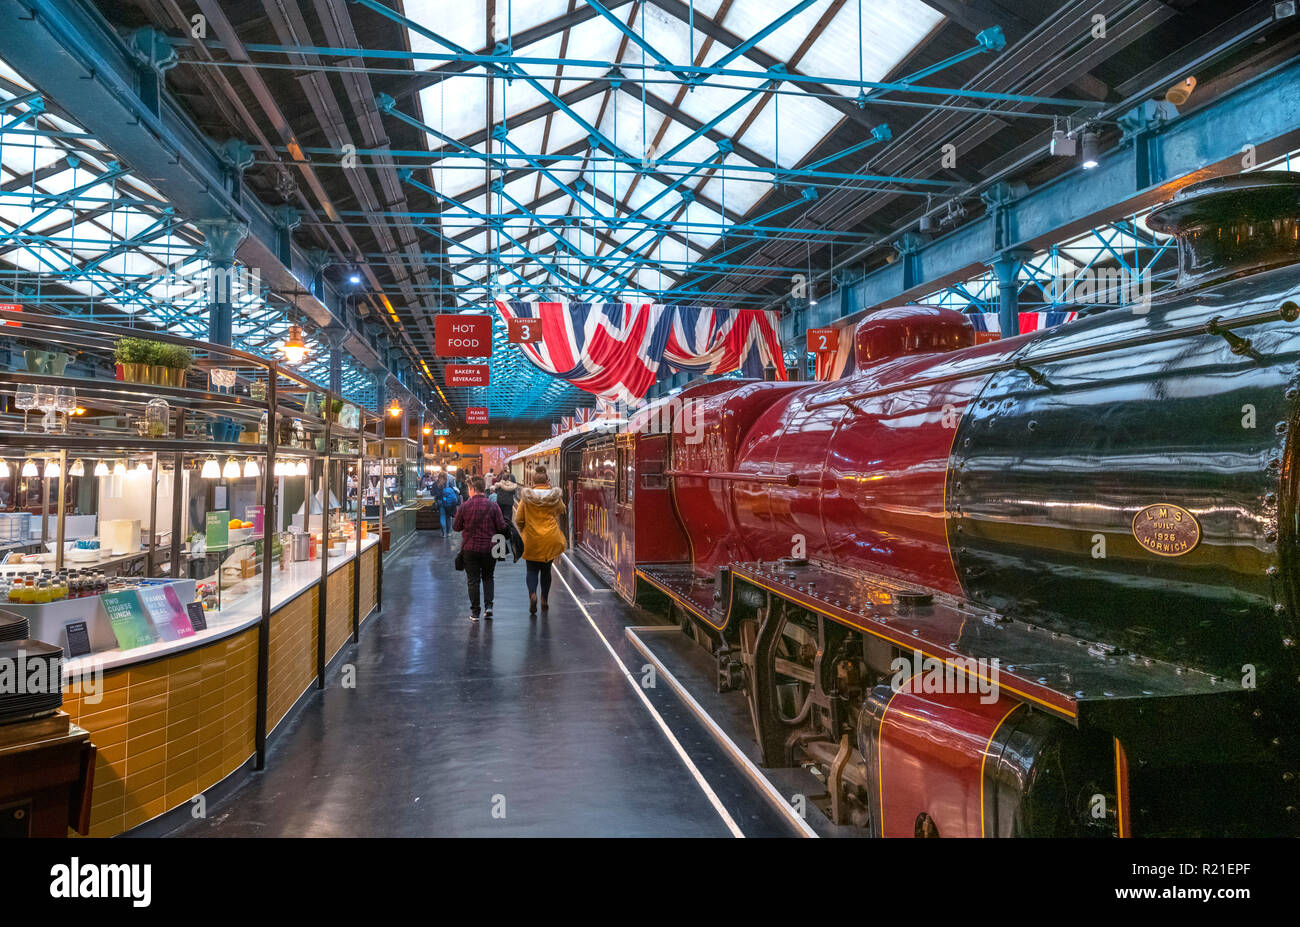 Steam train and cafes in the Station Hall, National Railway Museum, York, North Yorkshire, England UK - Stock Image